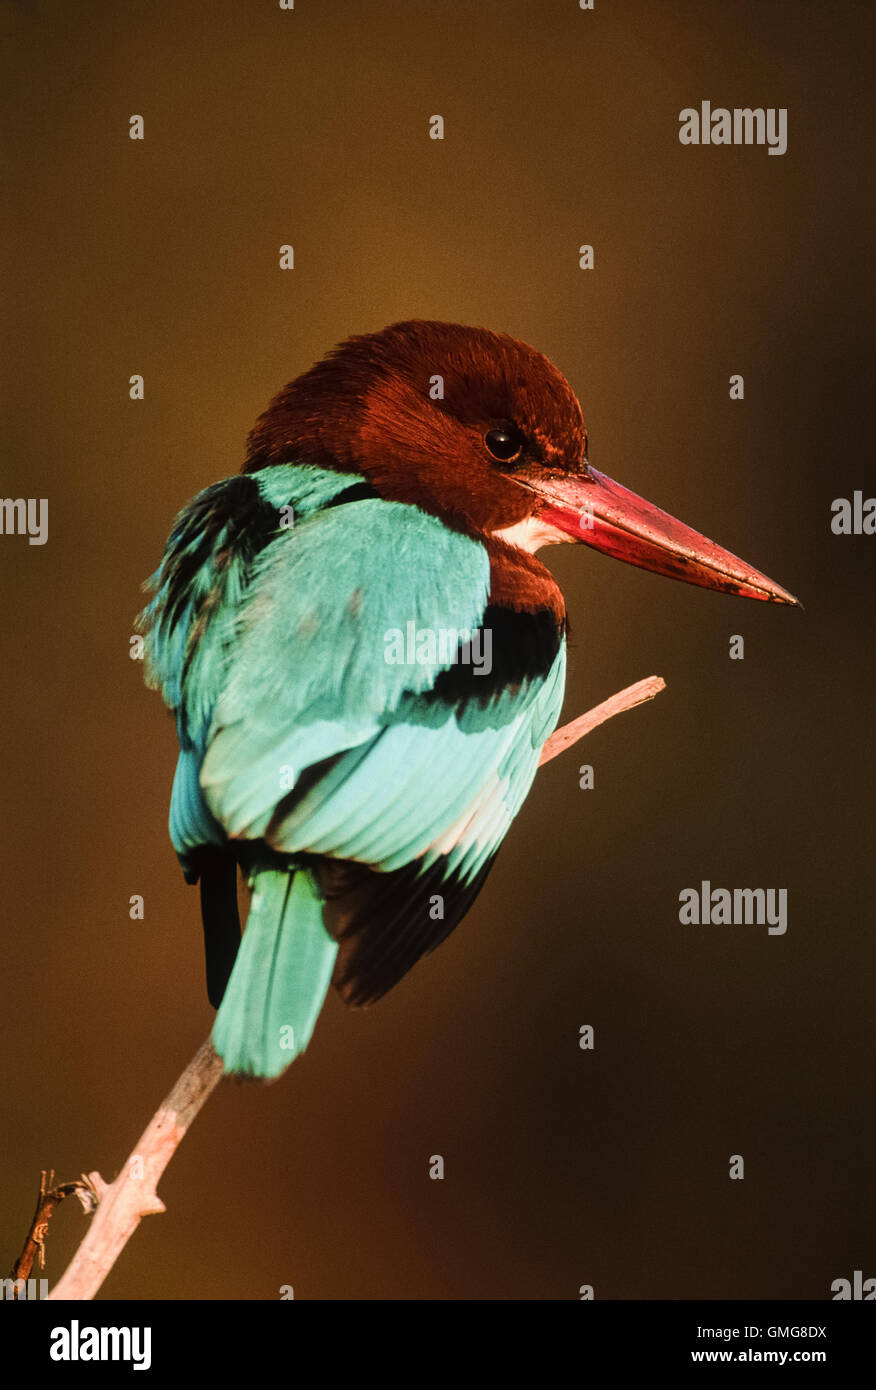 White-breasted Kingfisher or White-throated Kingfisher, (Halcyon smyrnensis) perched on branch, Bharatpur, India - Stock Image